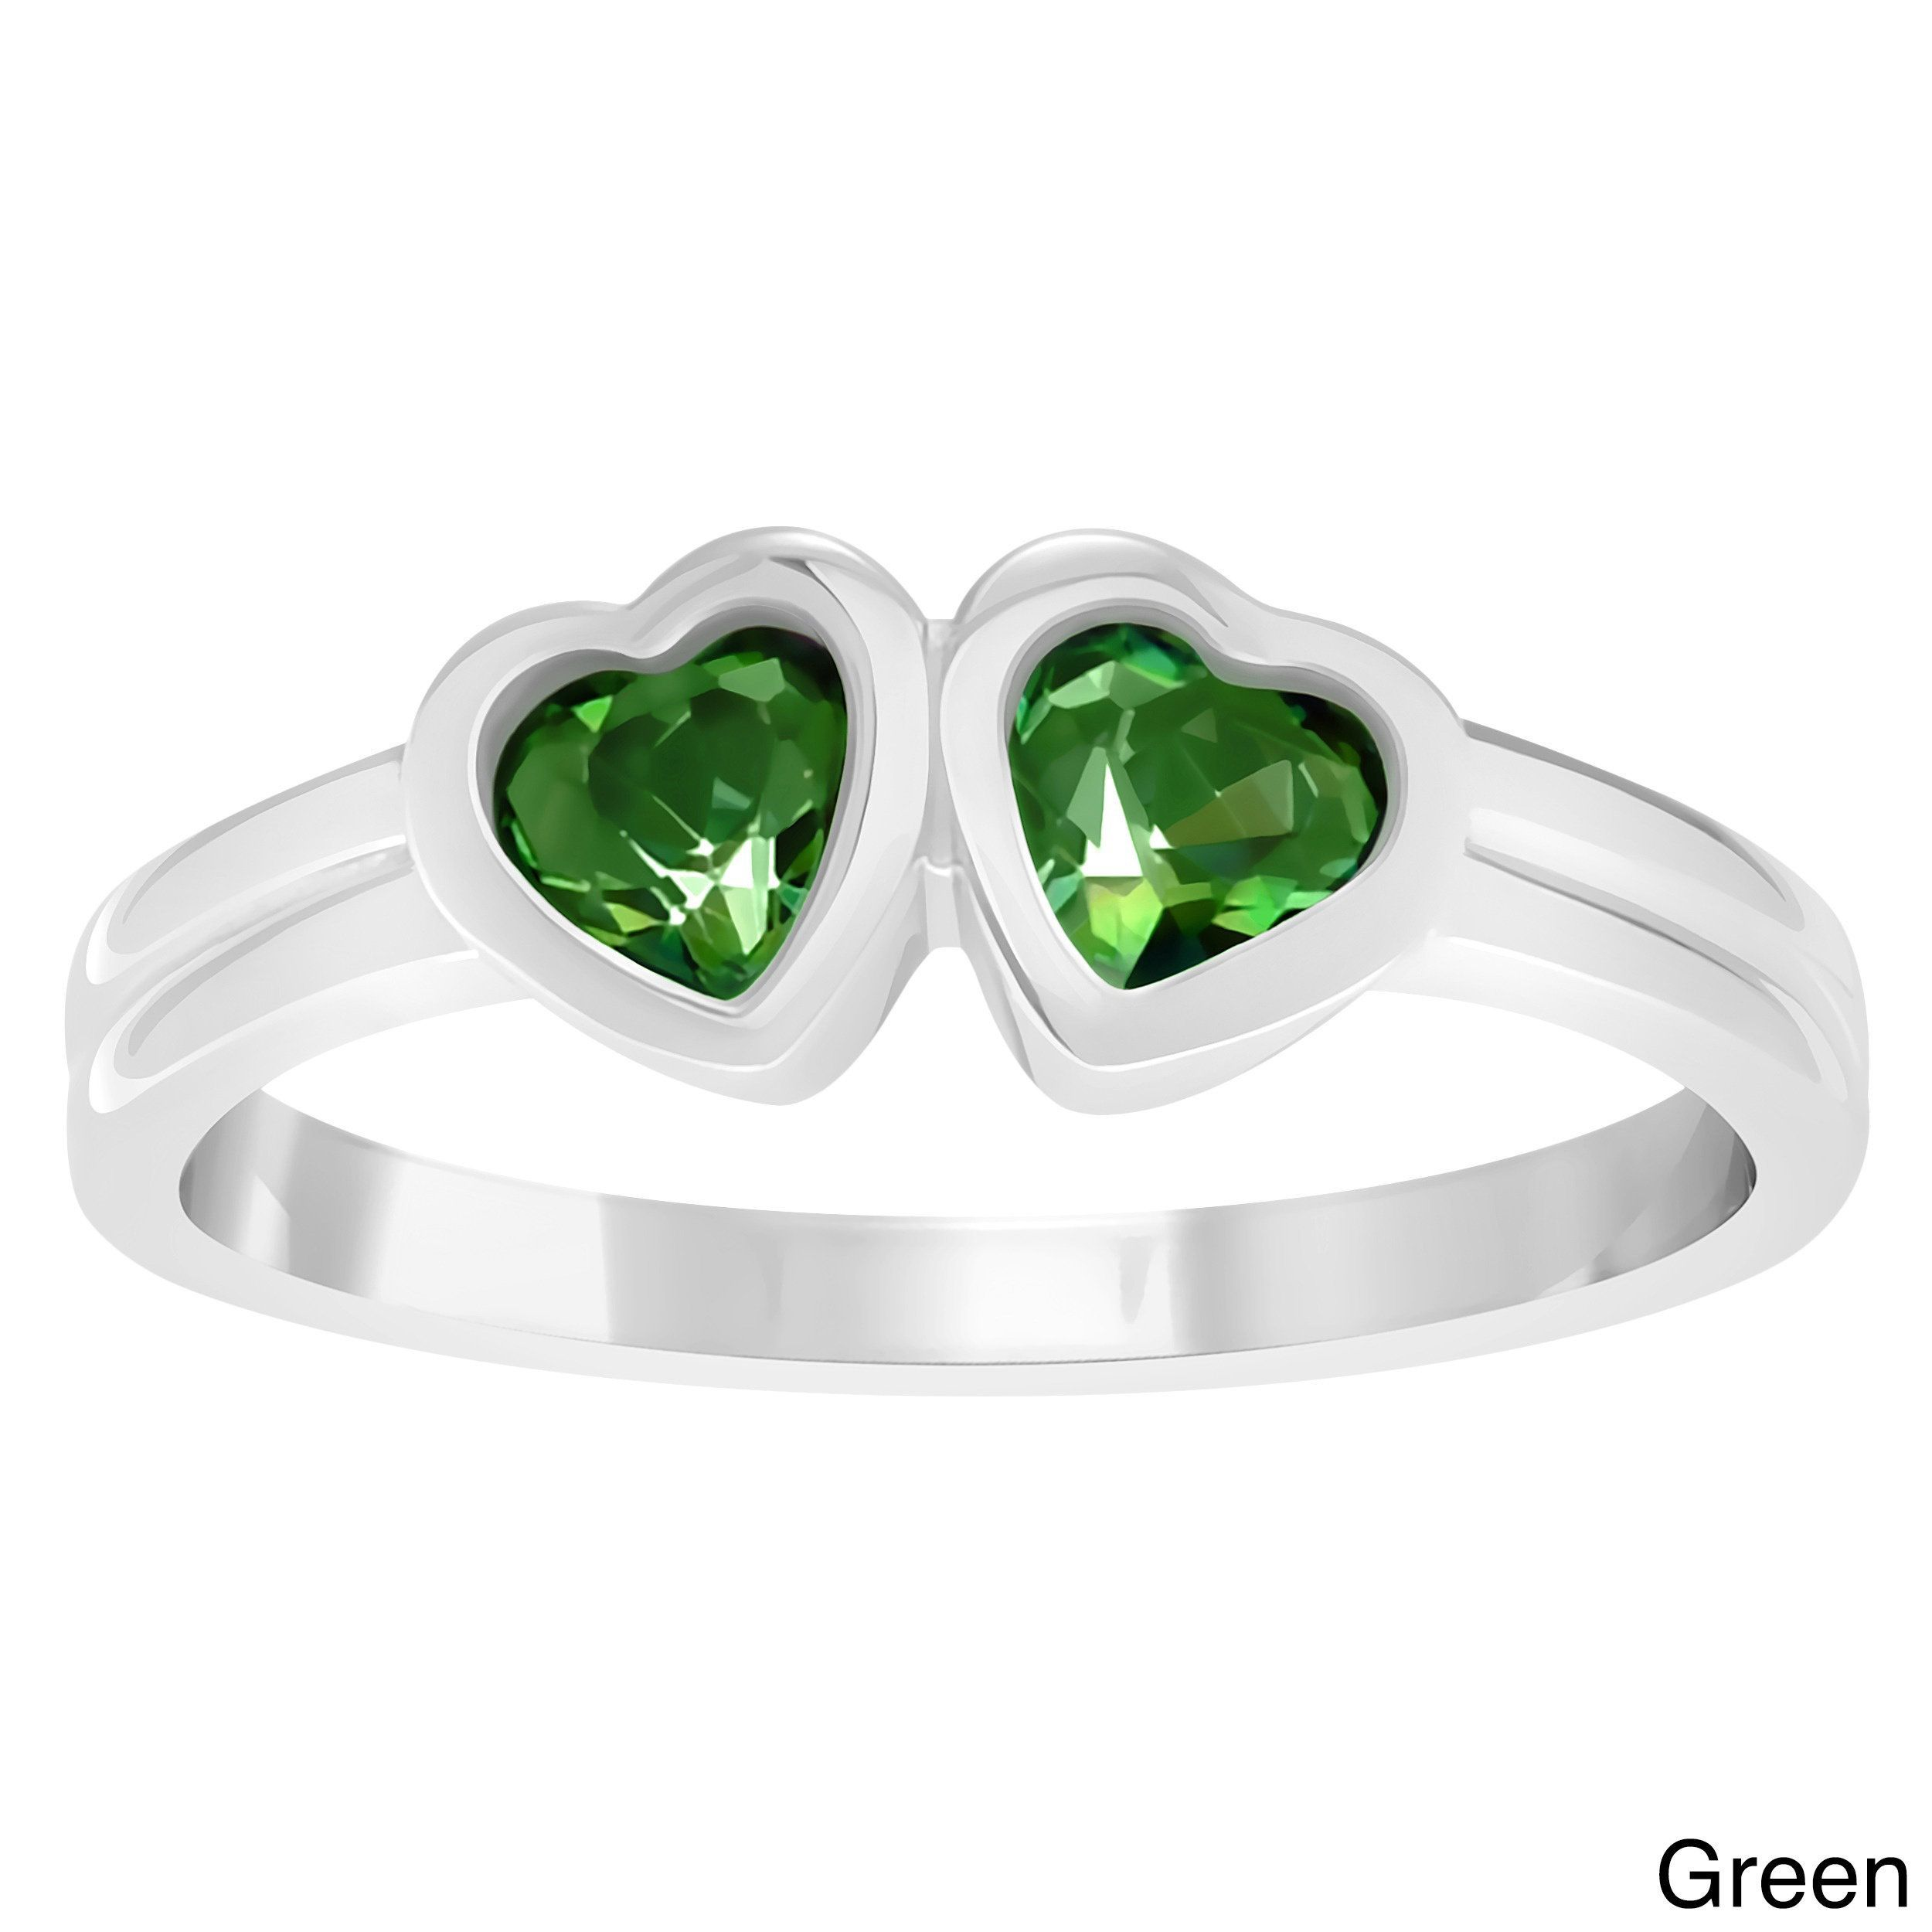 Journee Collection Children's Sterling Silver Cubic Zirconia Heart Ring (Green, Size 3), Girl's